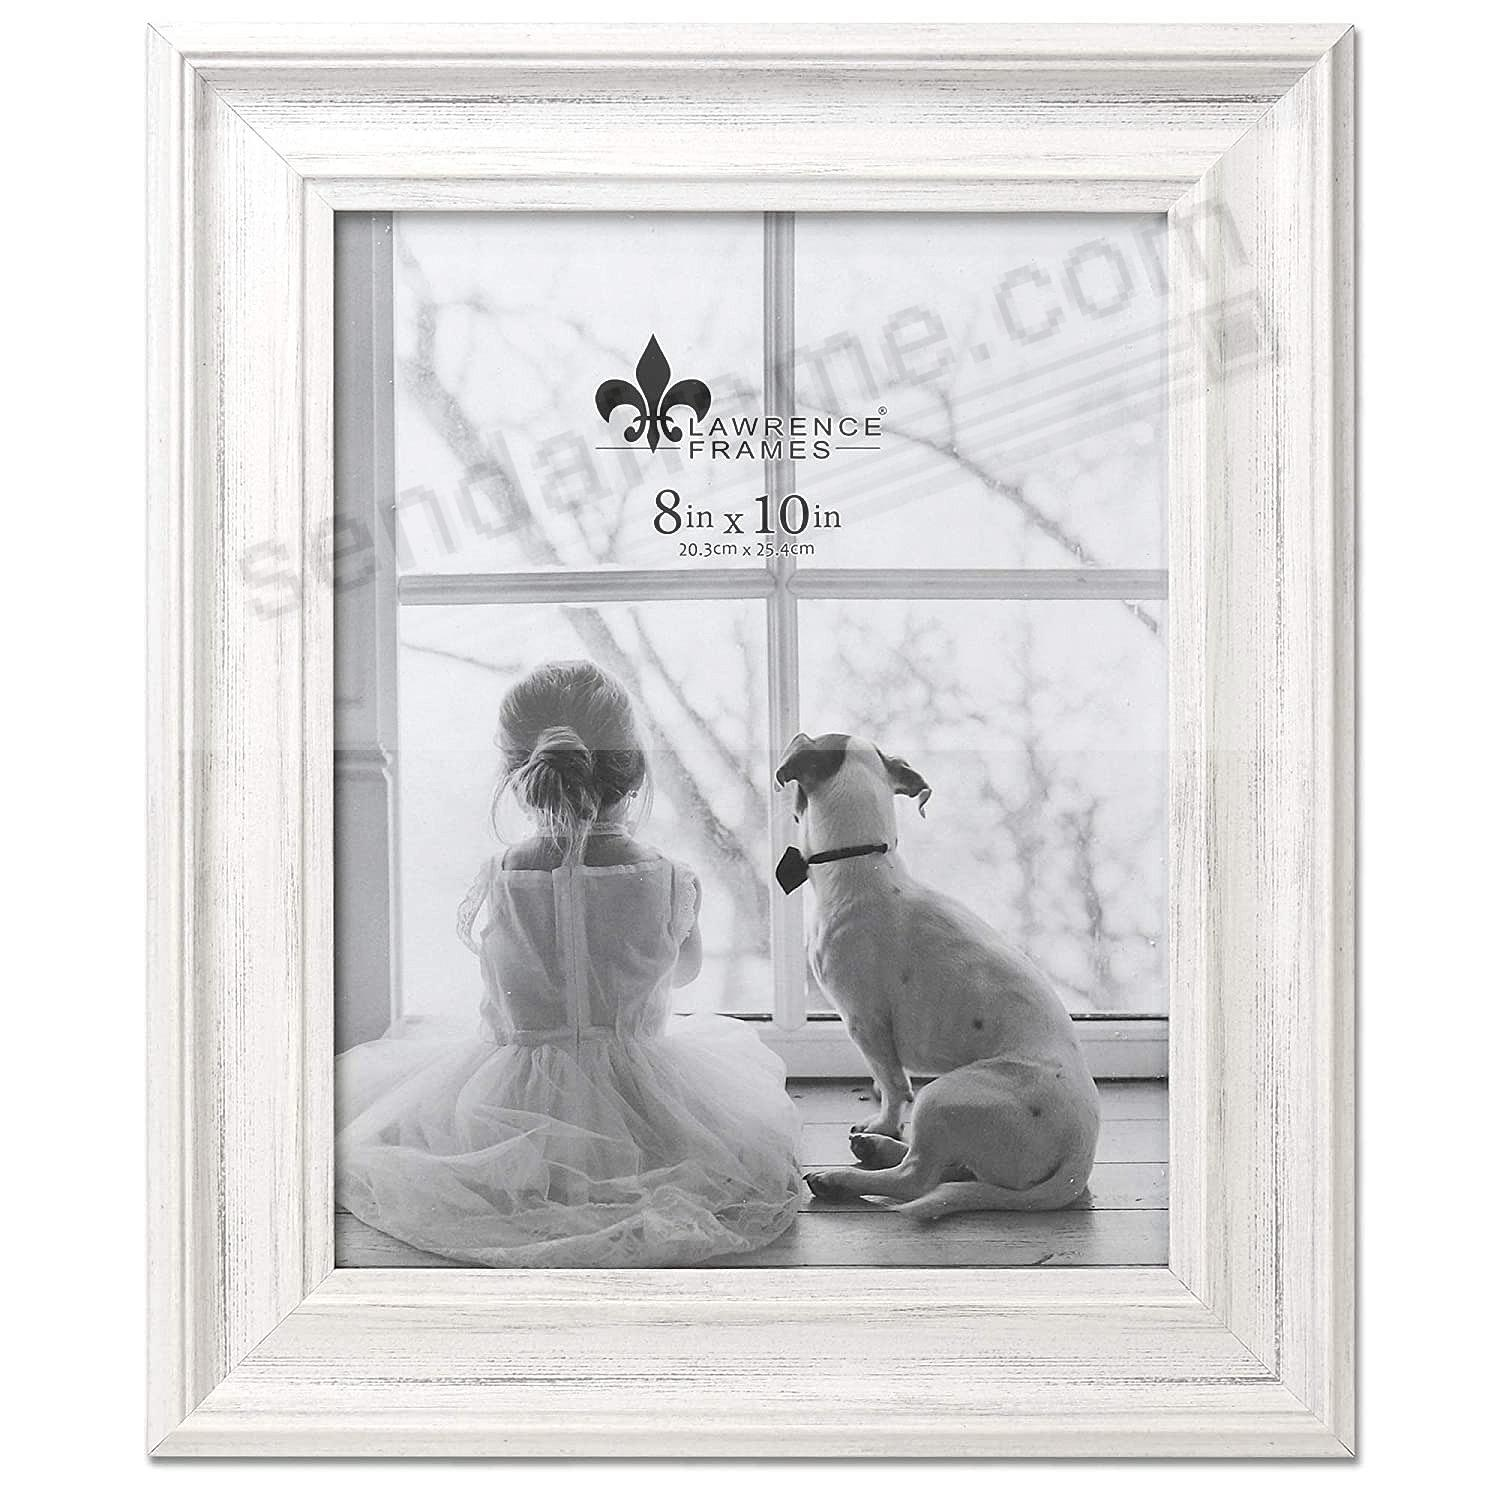 Antique WHITE MARLO 8x10 frame by Lawrence®